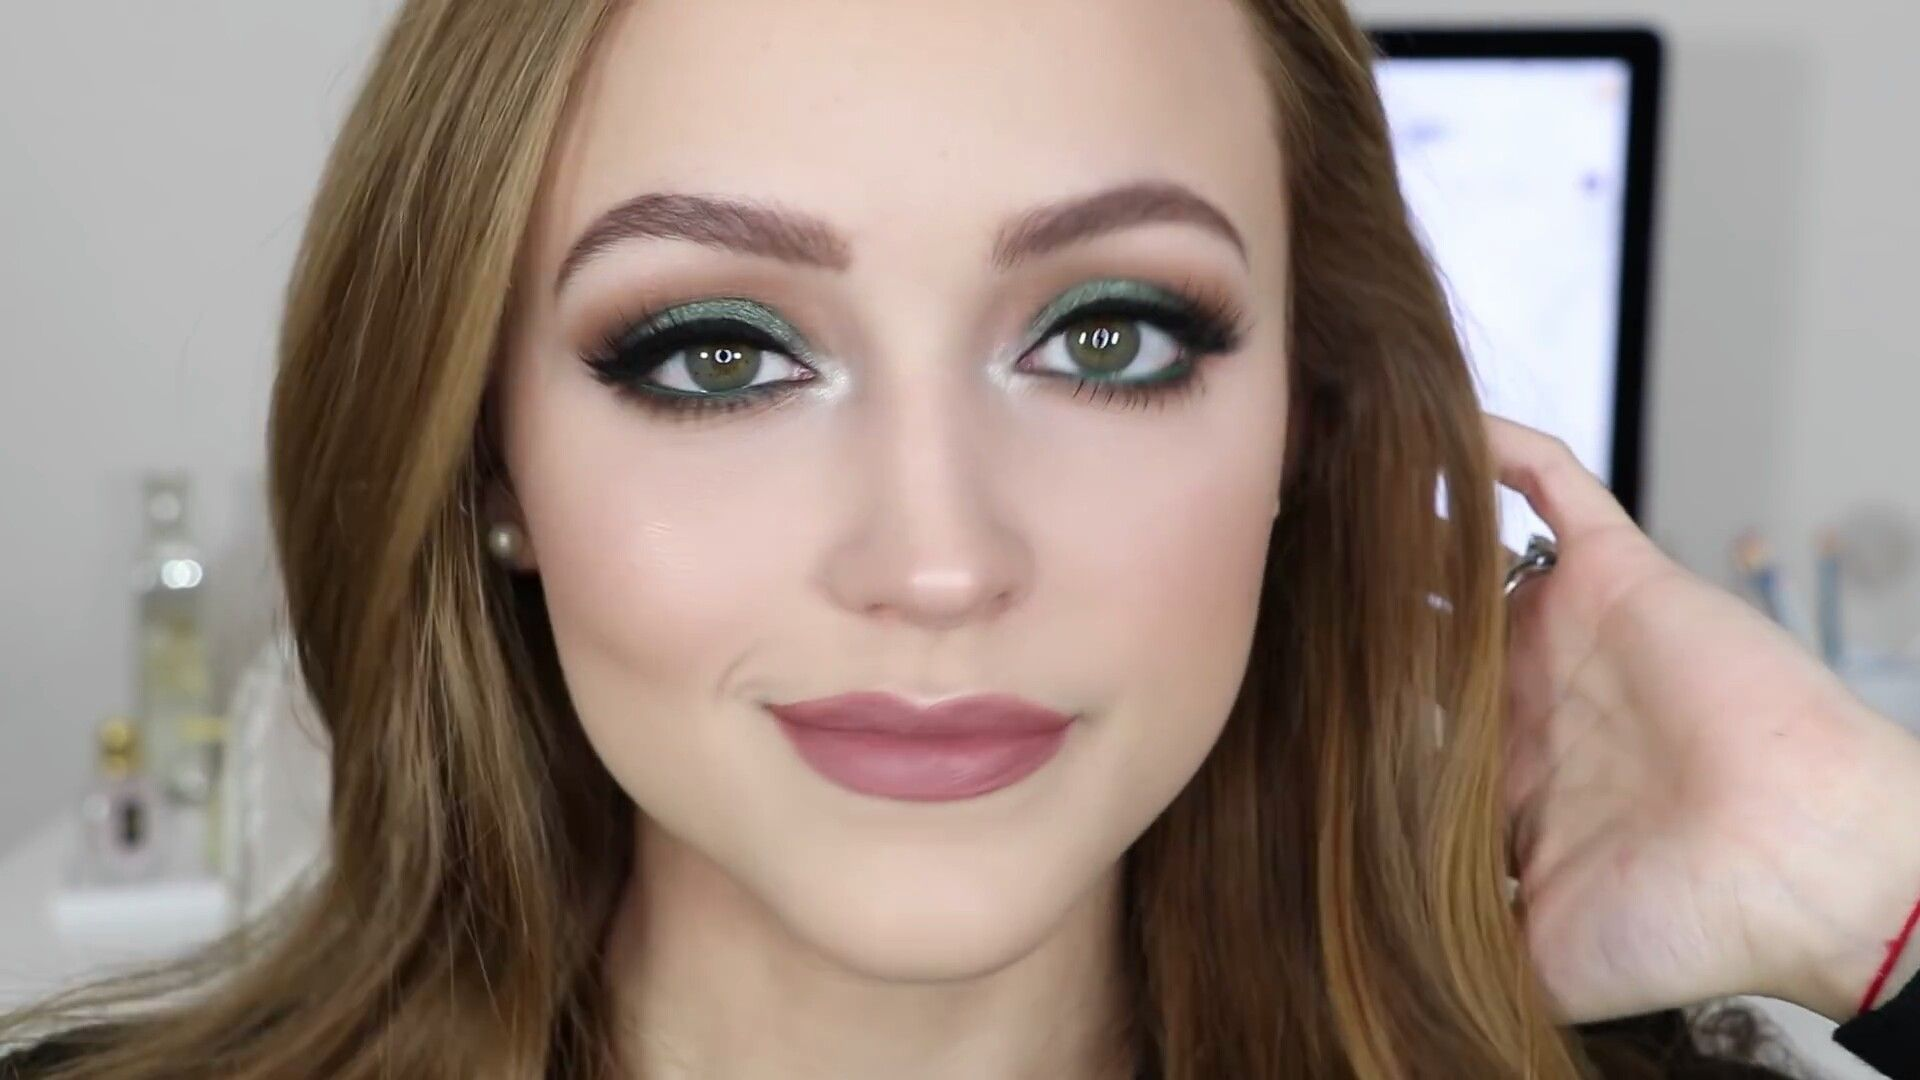 Kathleen Lights emerald eye using her Morphe pallet. Love